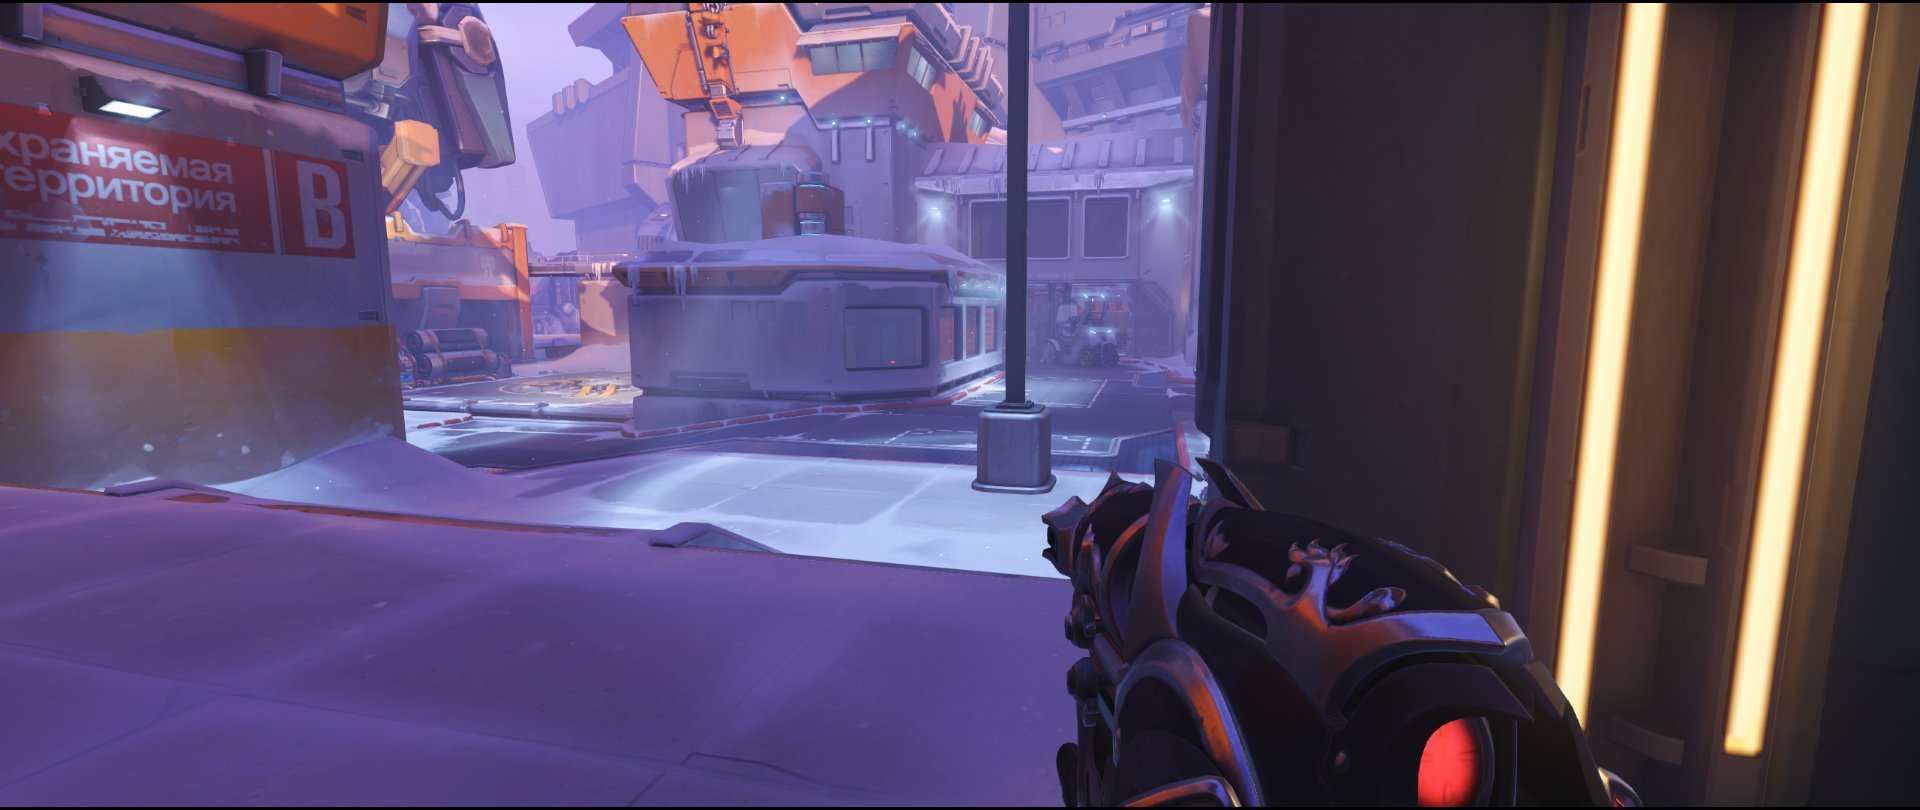 Garage area attack sniping spot Widowmaker Volskaya Industries Overwatch.jpg